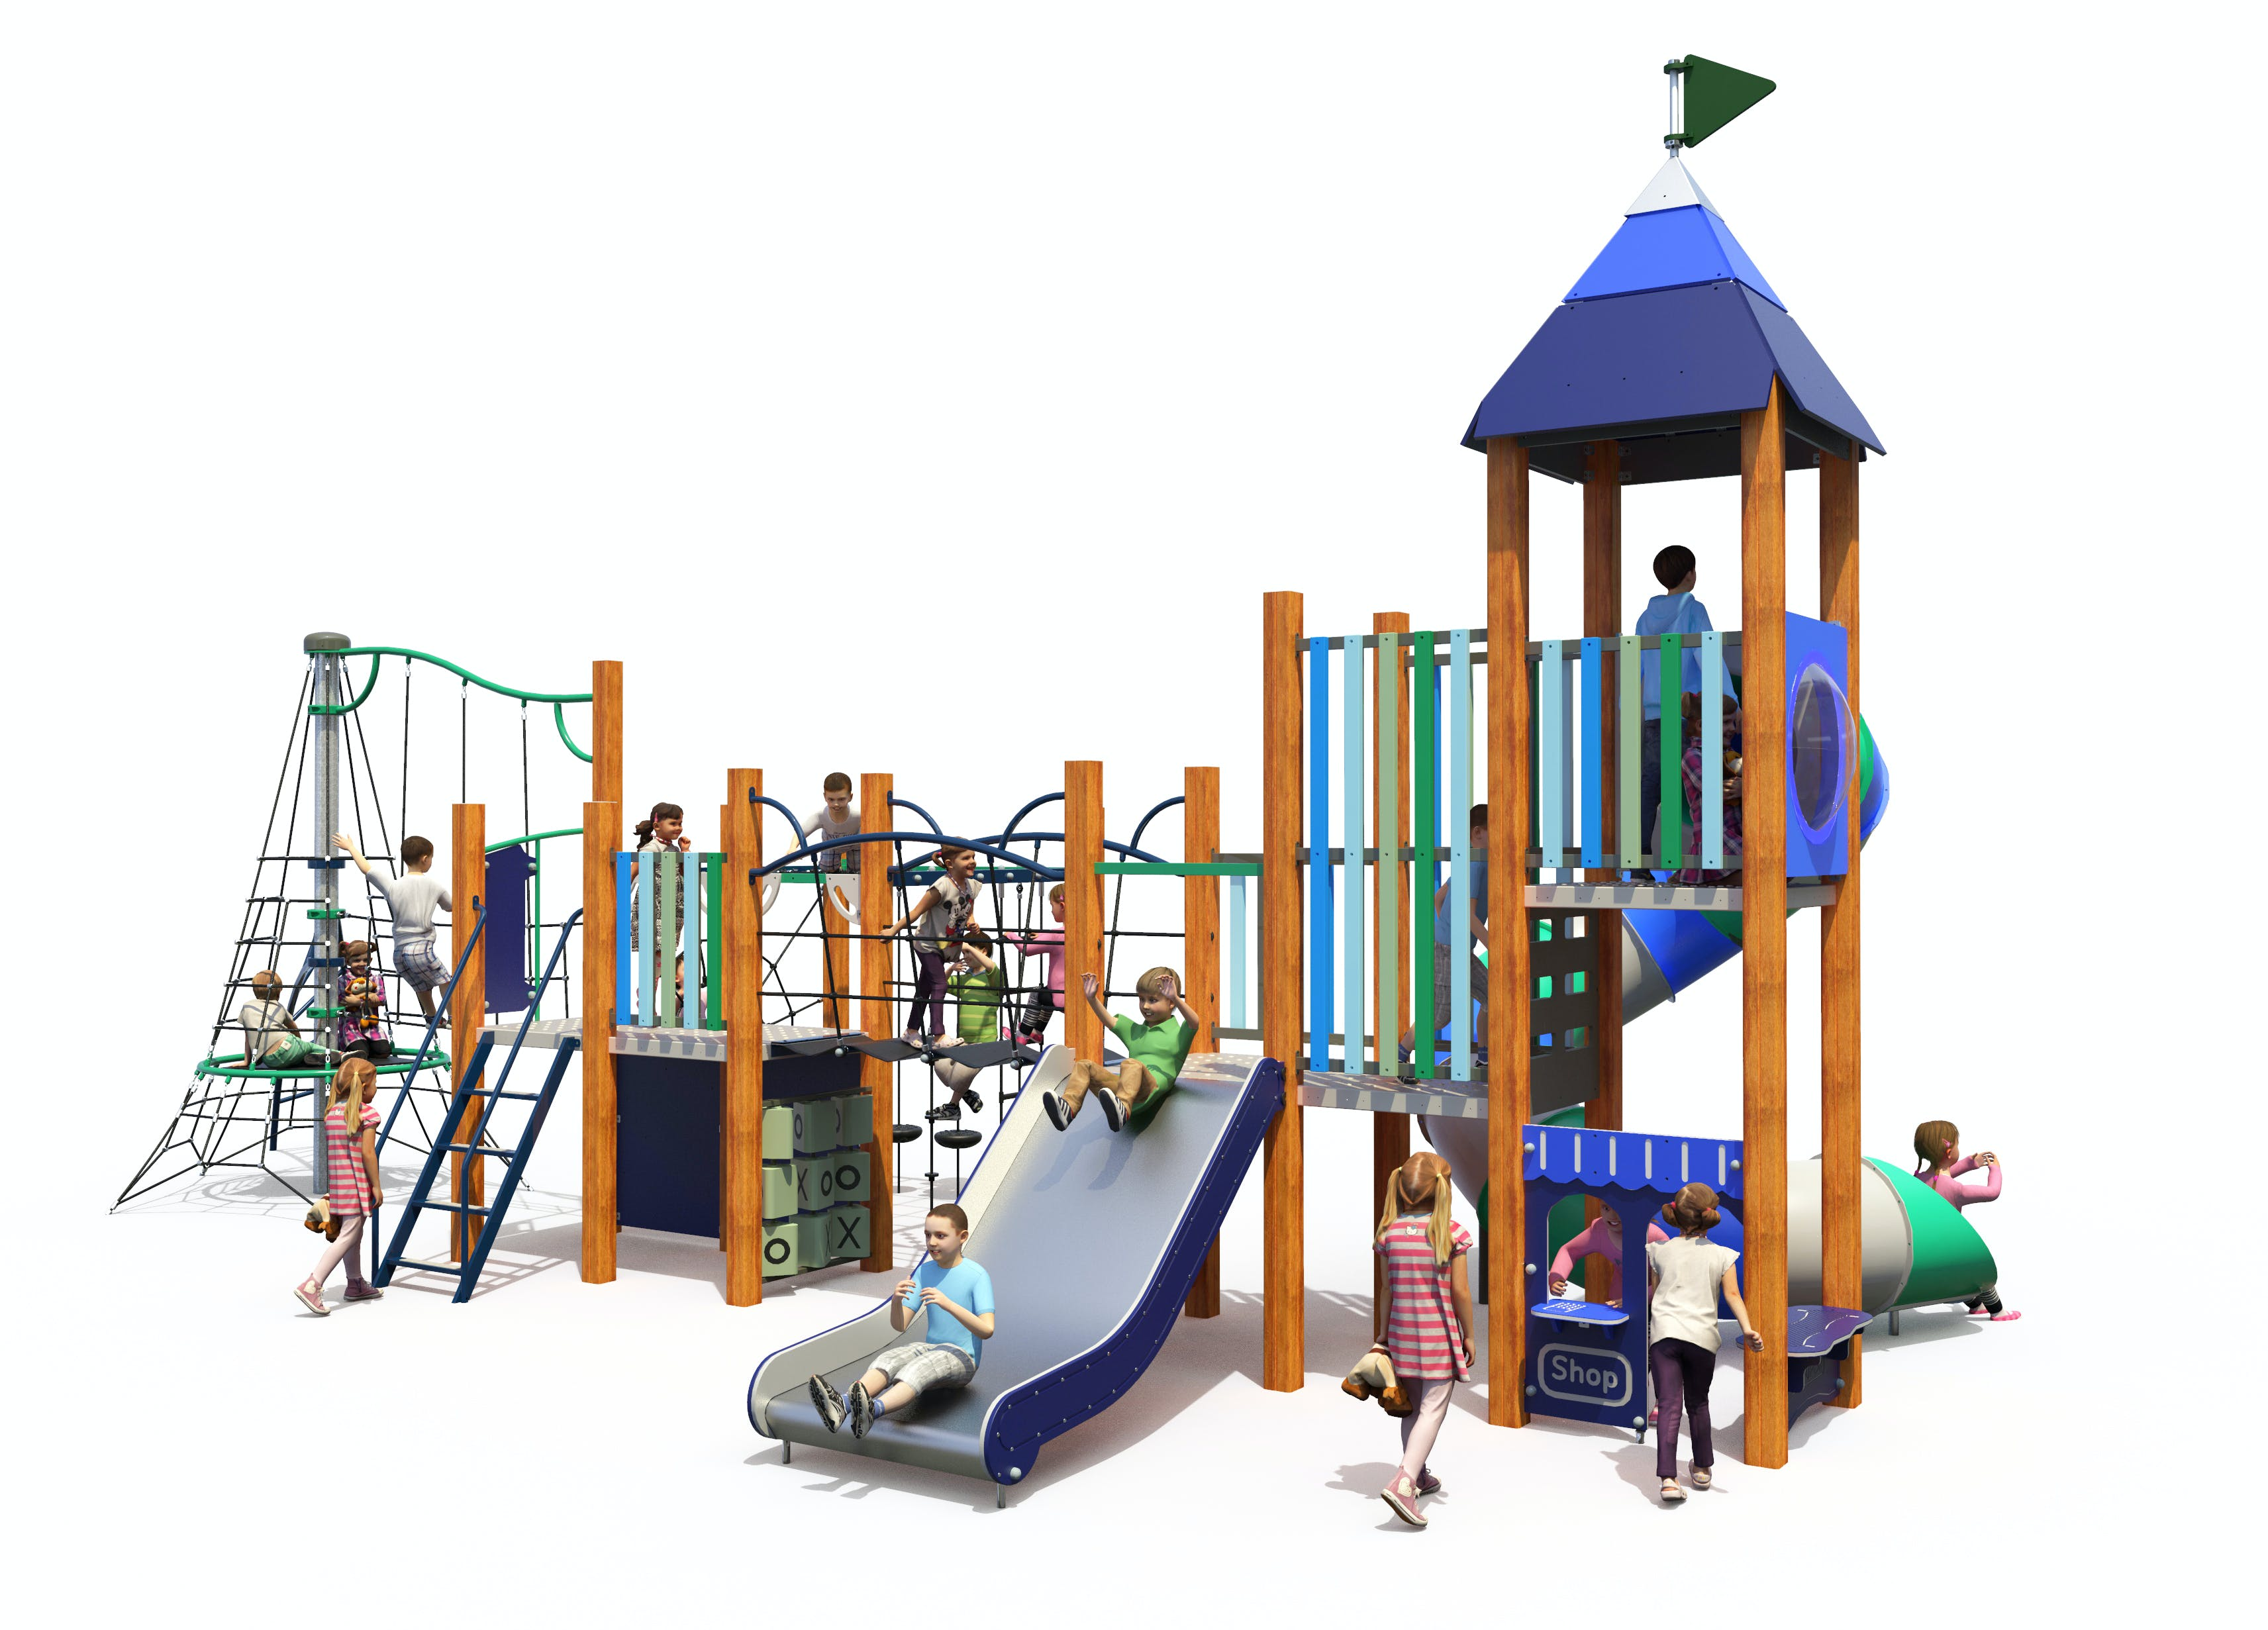 Playground image front